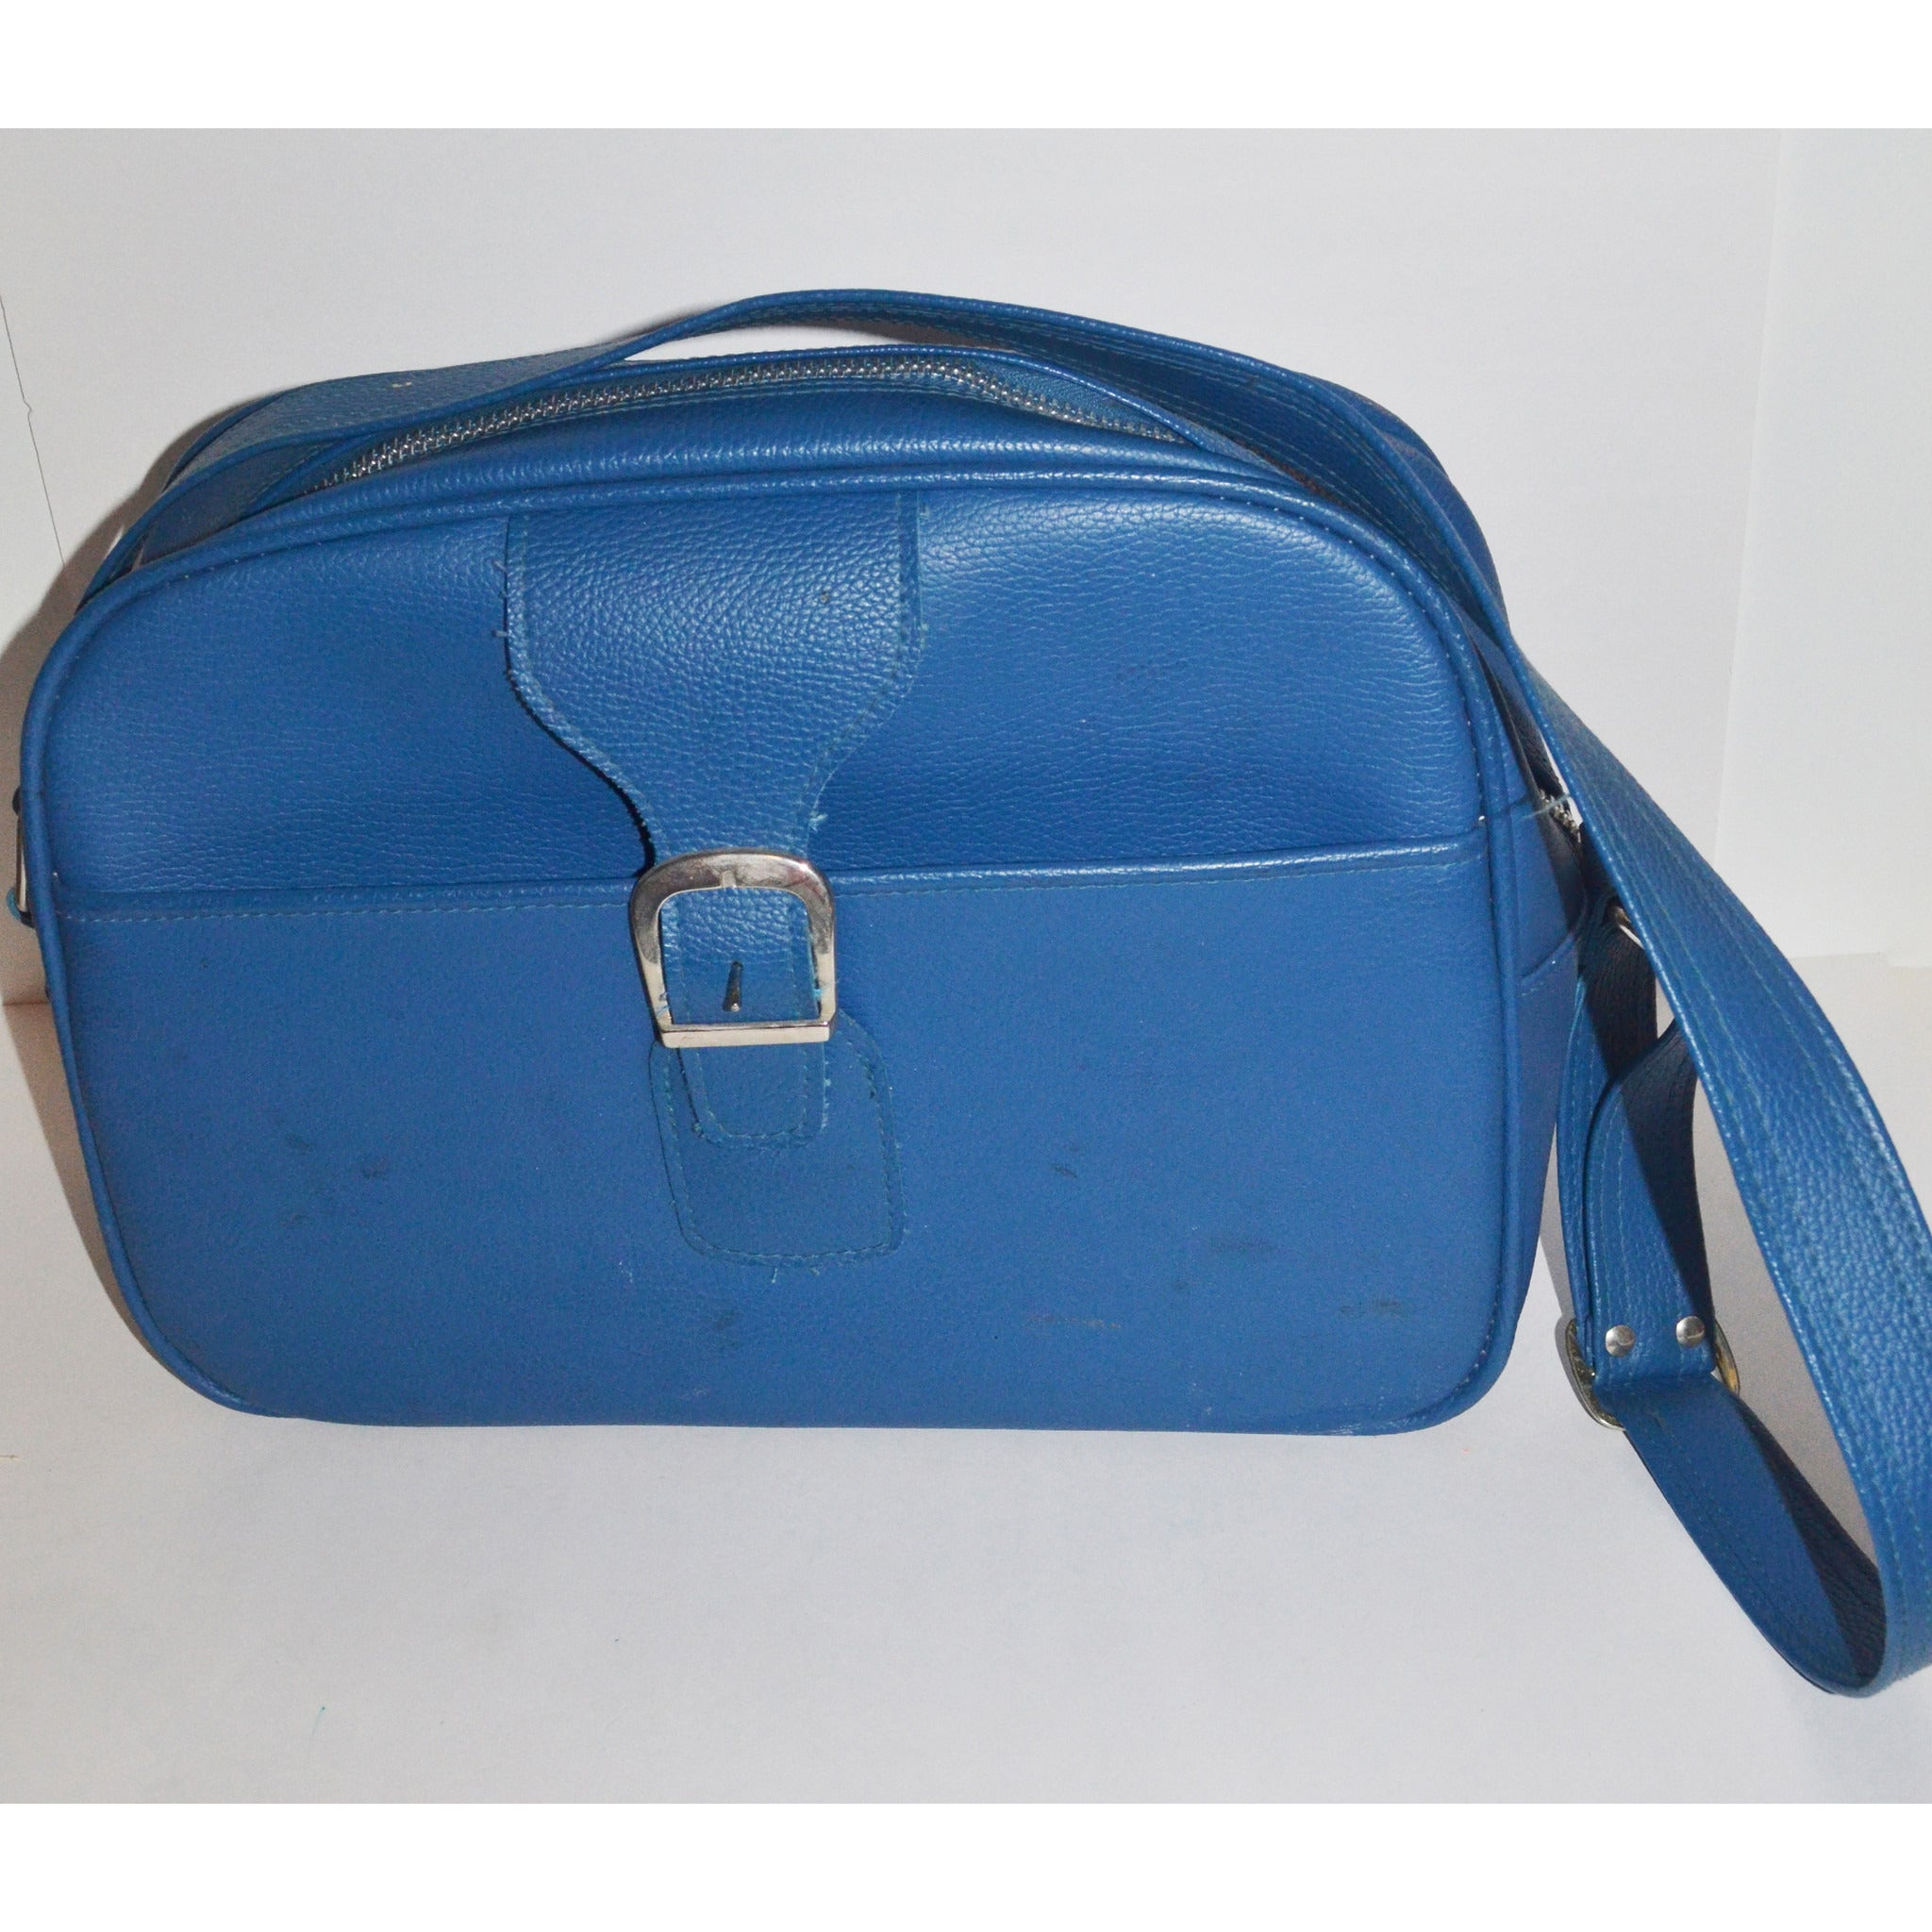 Vintage Blue Saturn II Travel Luggage By Samsonite